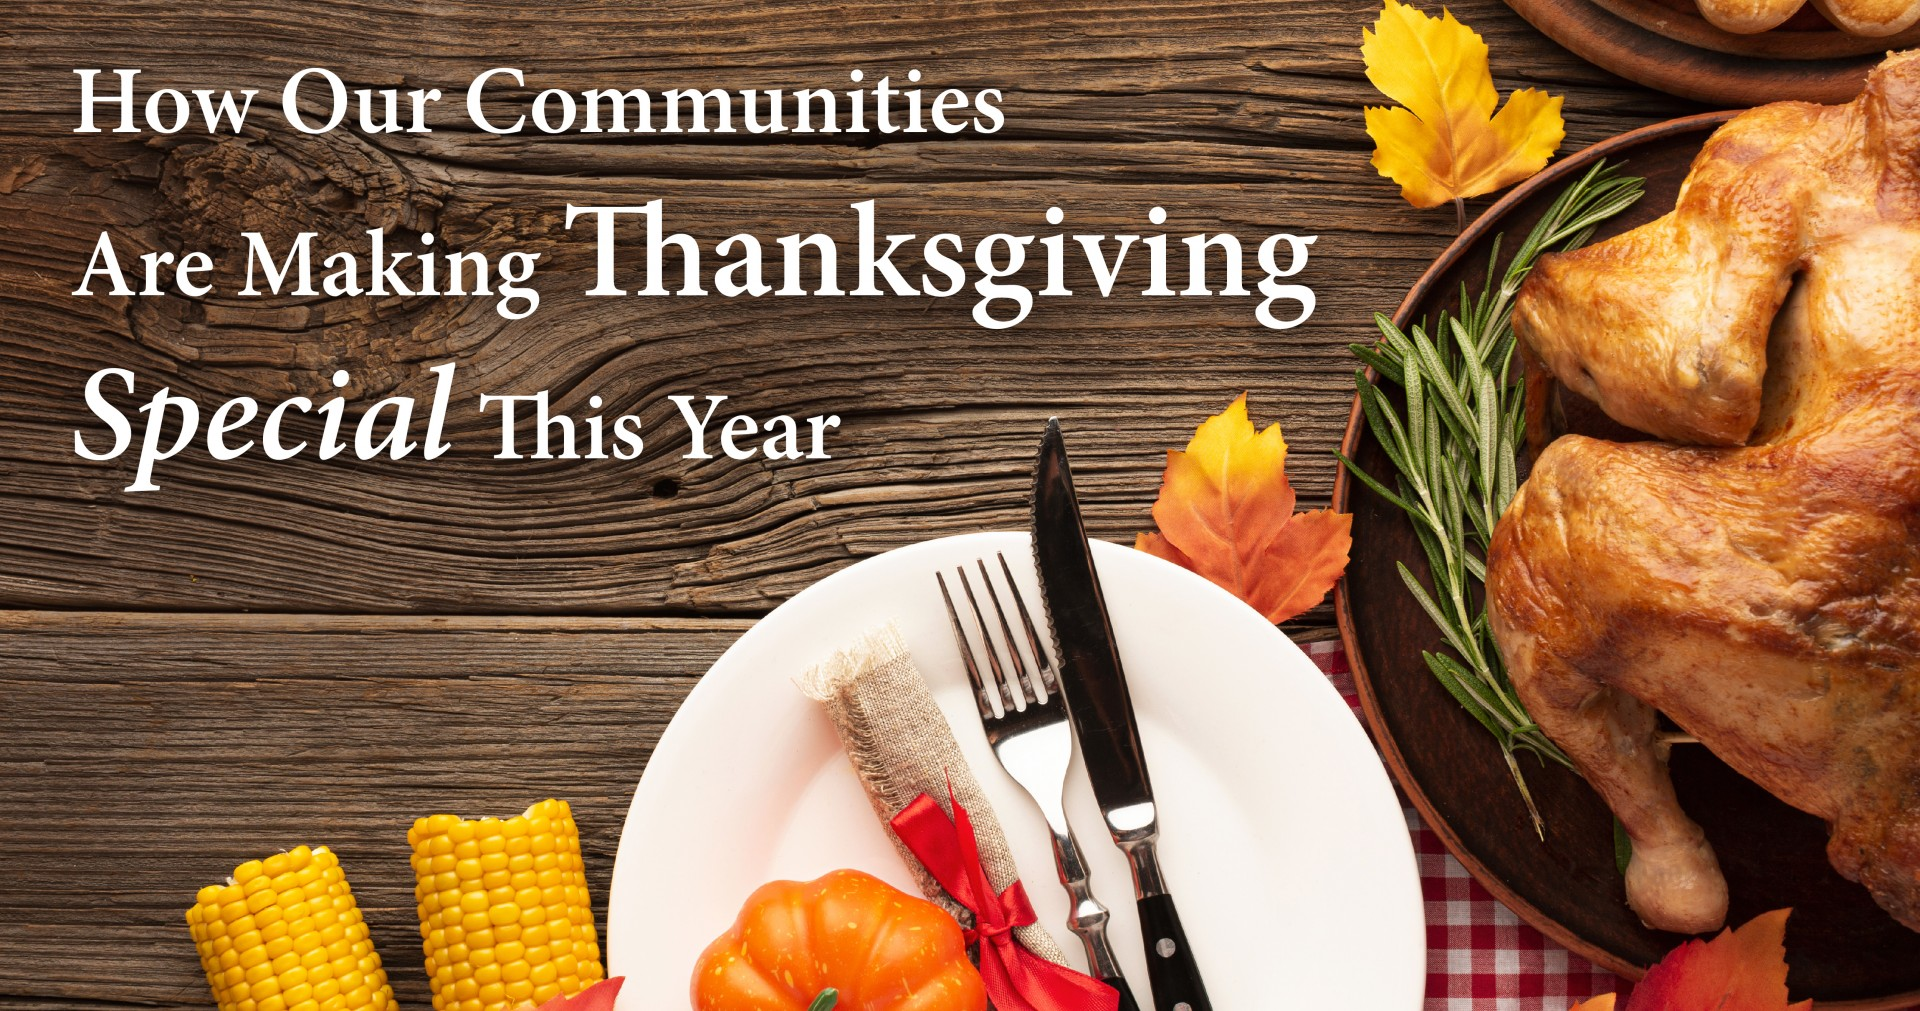 How Our Communities Are Making Thanksgiving Special This Year